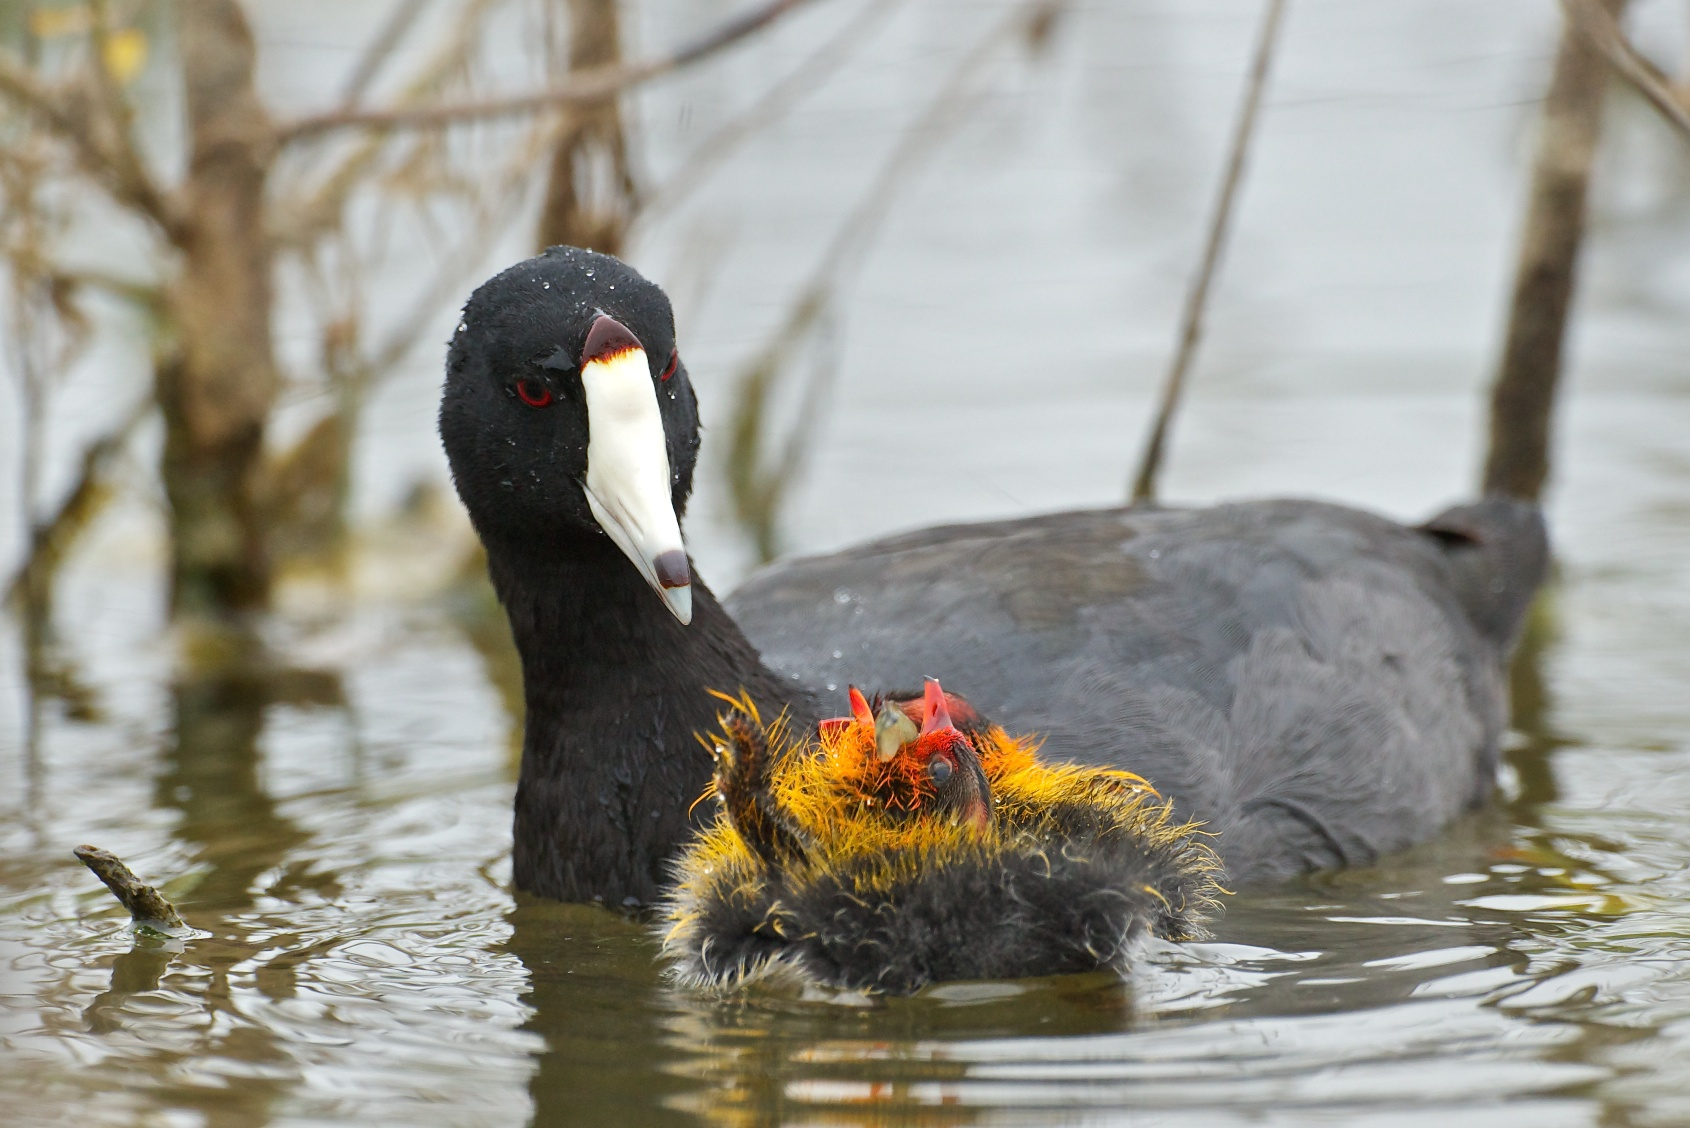 Am coot feeding chick